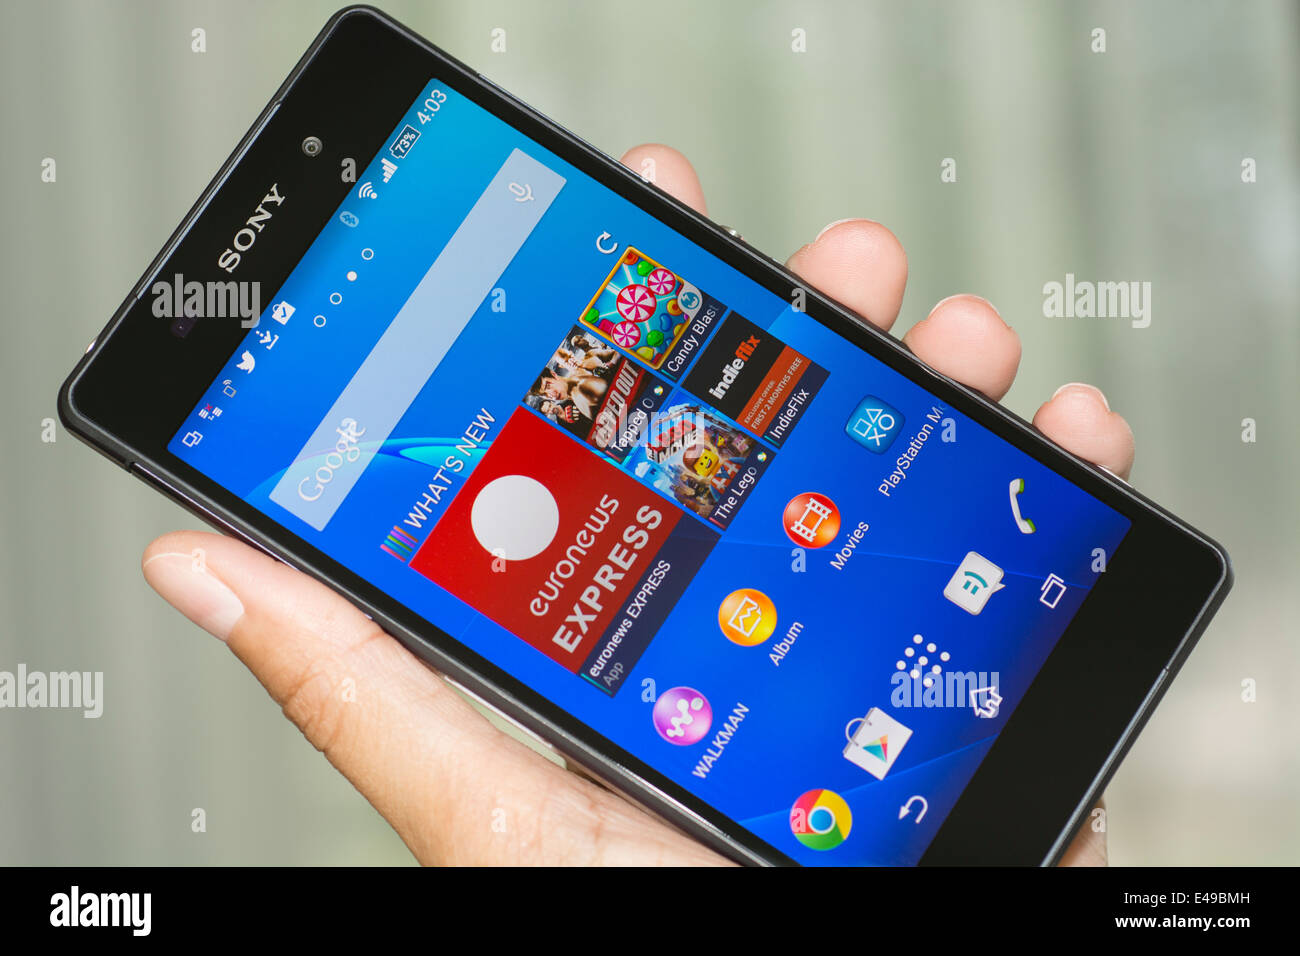 Hand holding Smartphone, Cell, Mobile Phone, Xperia Z2 - Stock Image